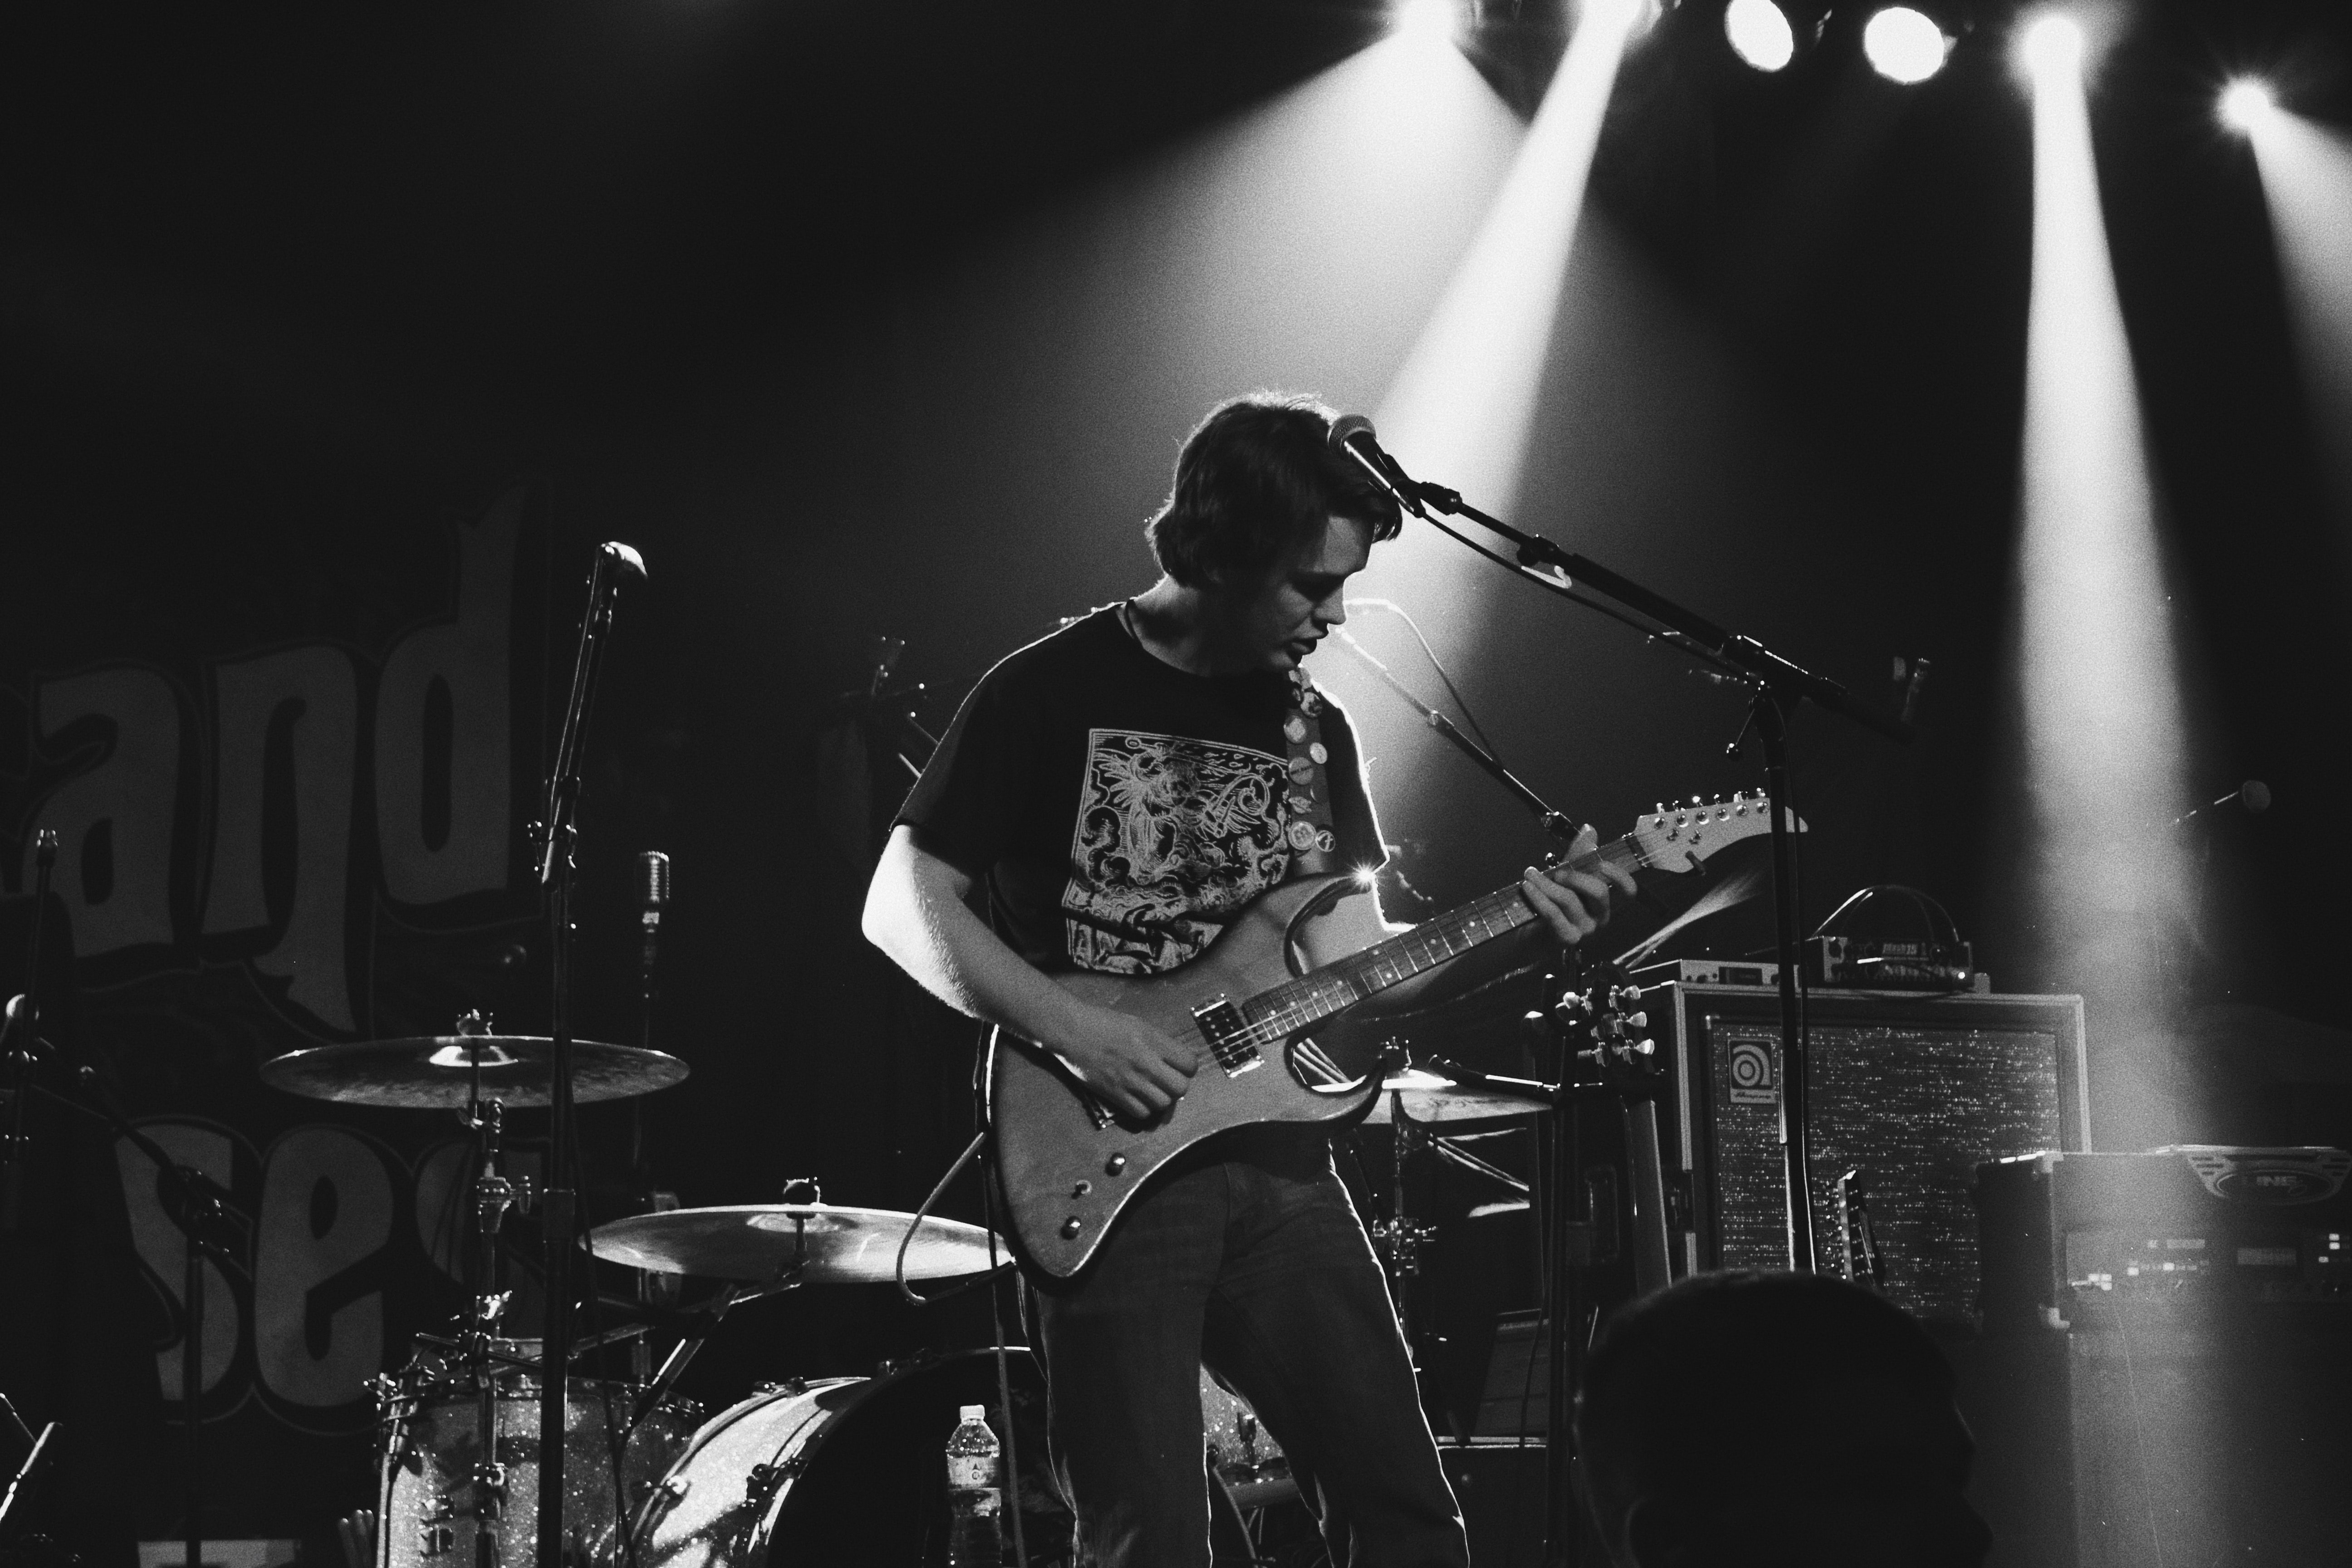 greyscale photo of man playing electric guitar on stage